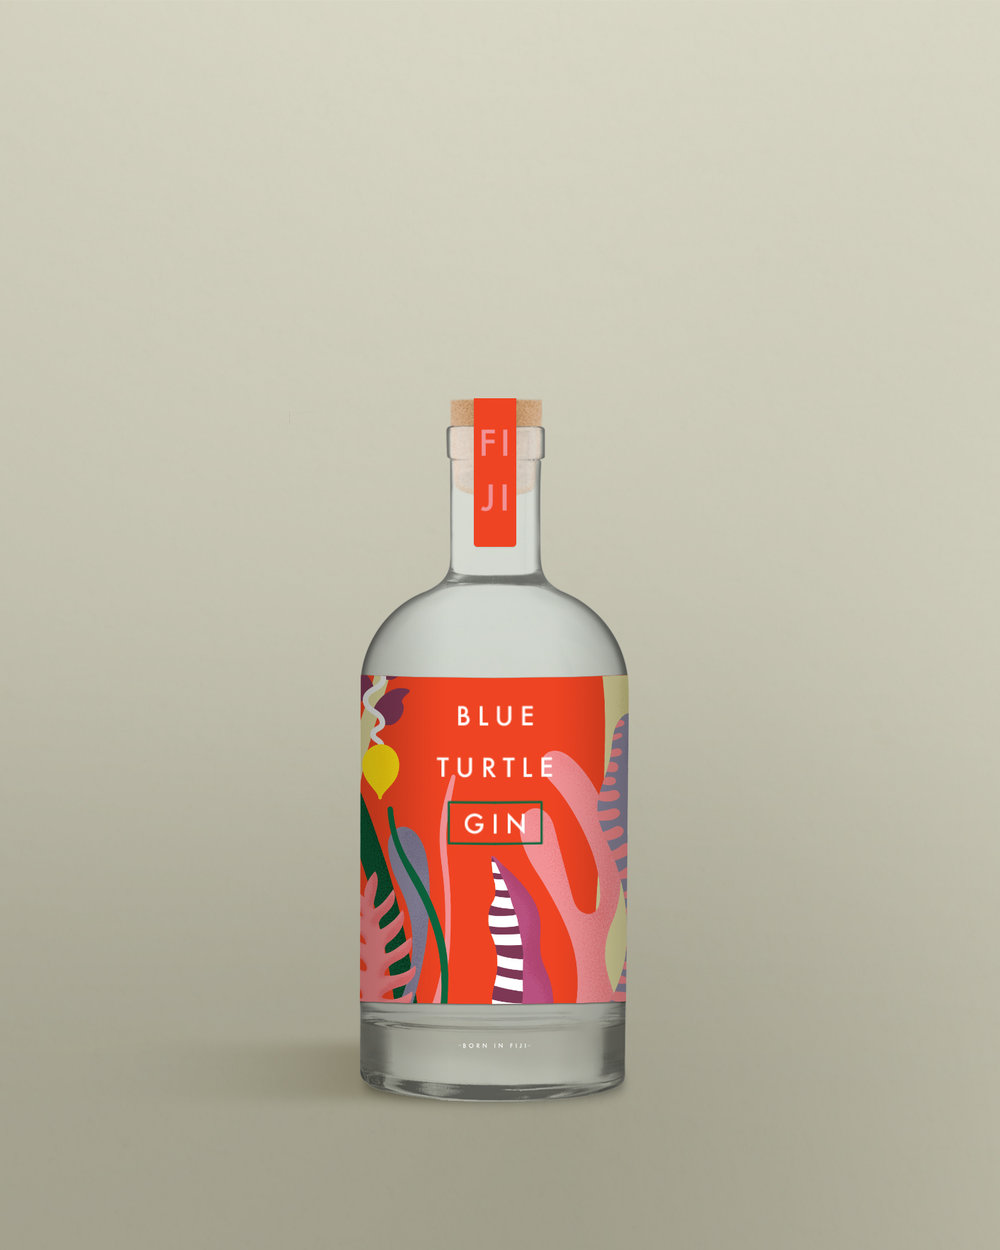 FIJIAN GIN LABEL DESIGN